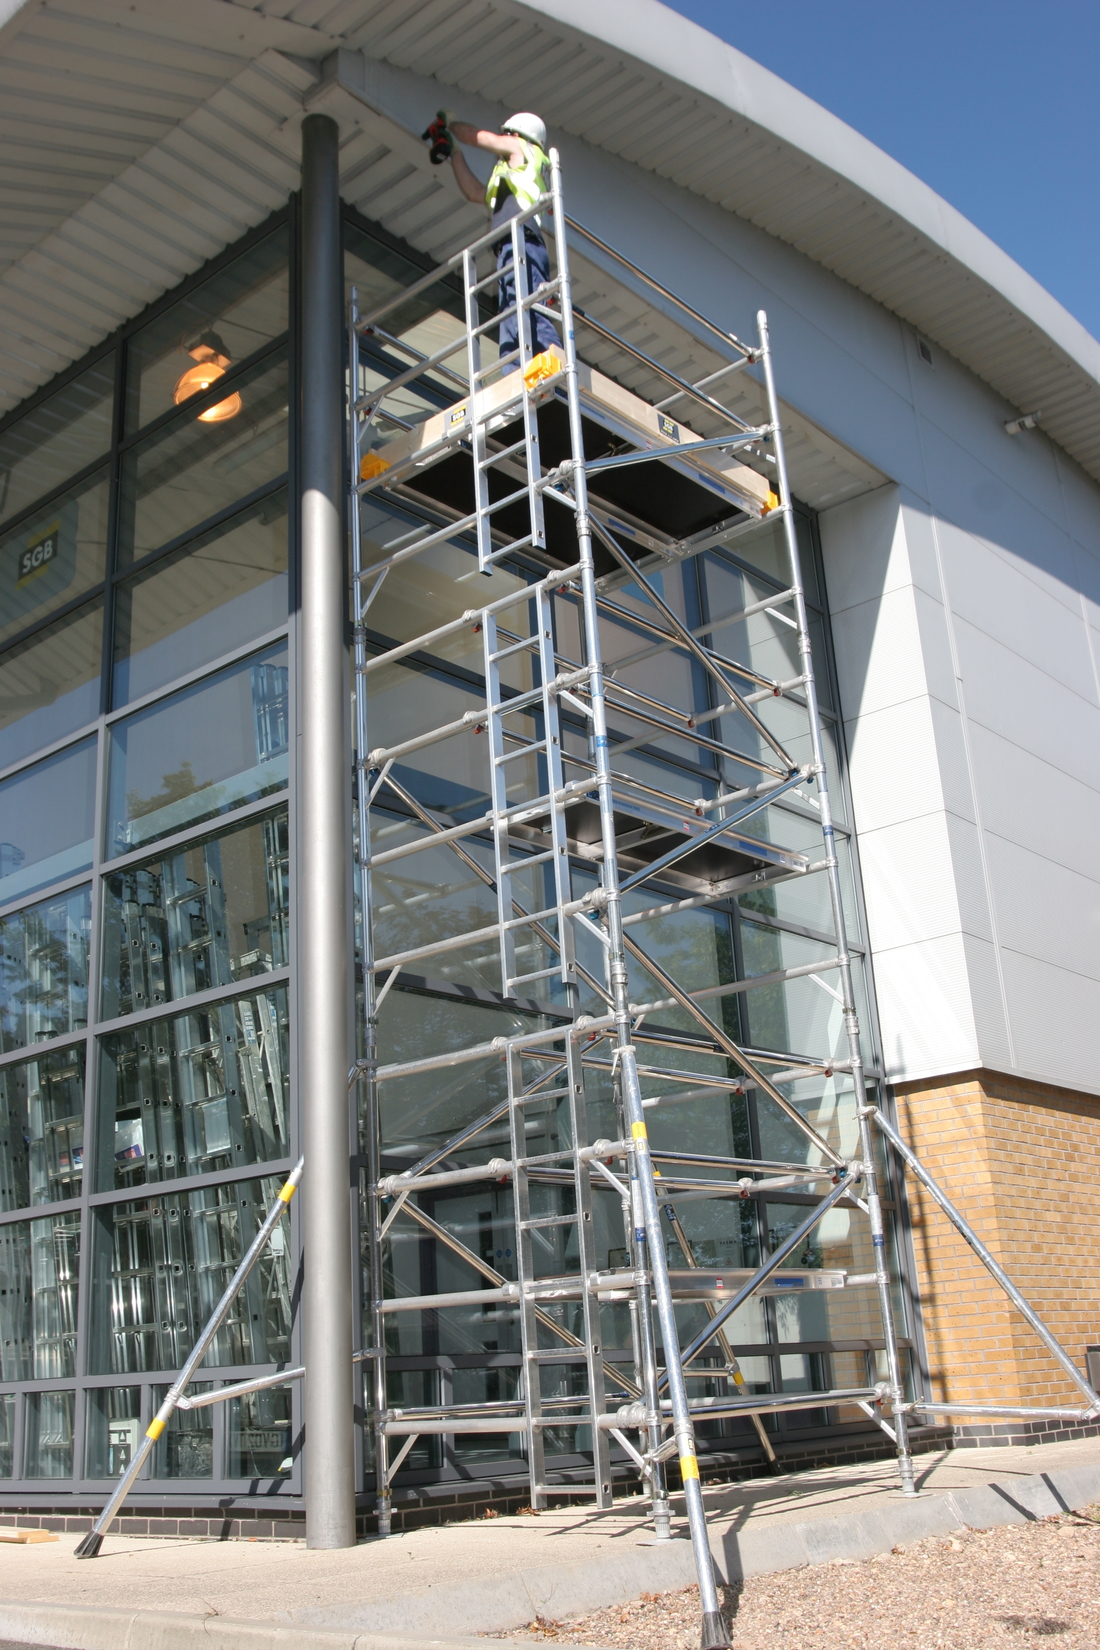 2.5m x 1.5m Base (Double Span) Scaffold Tower Maximum Platform Height 2.2m